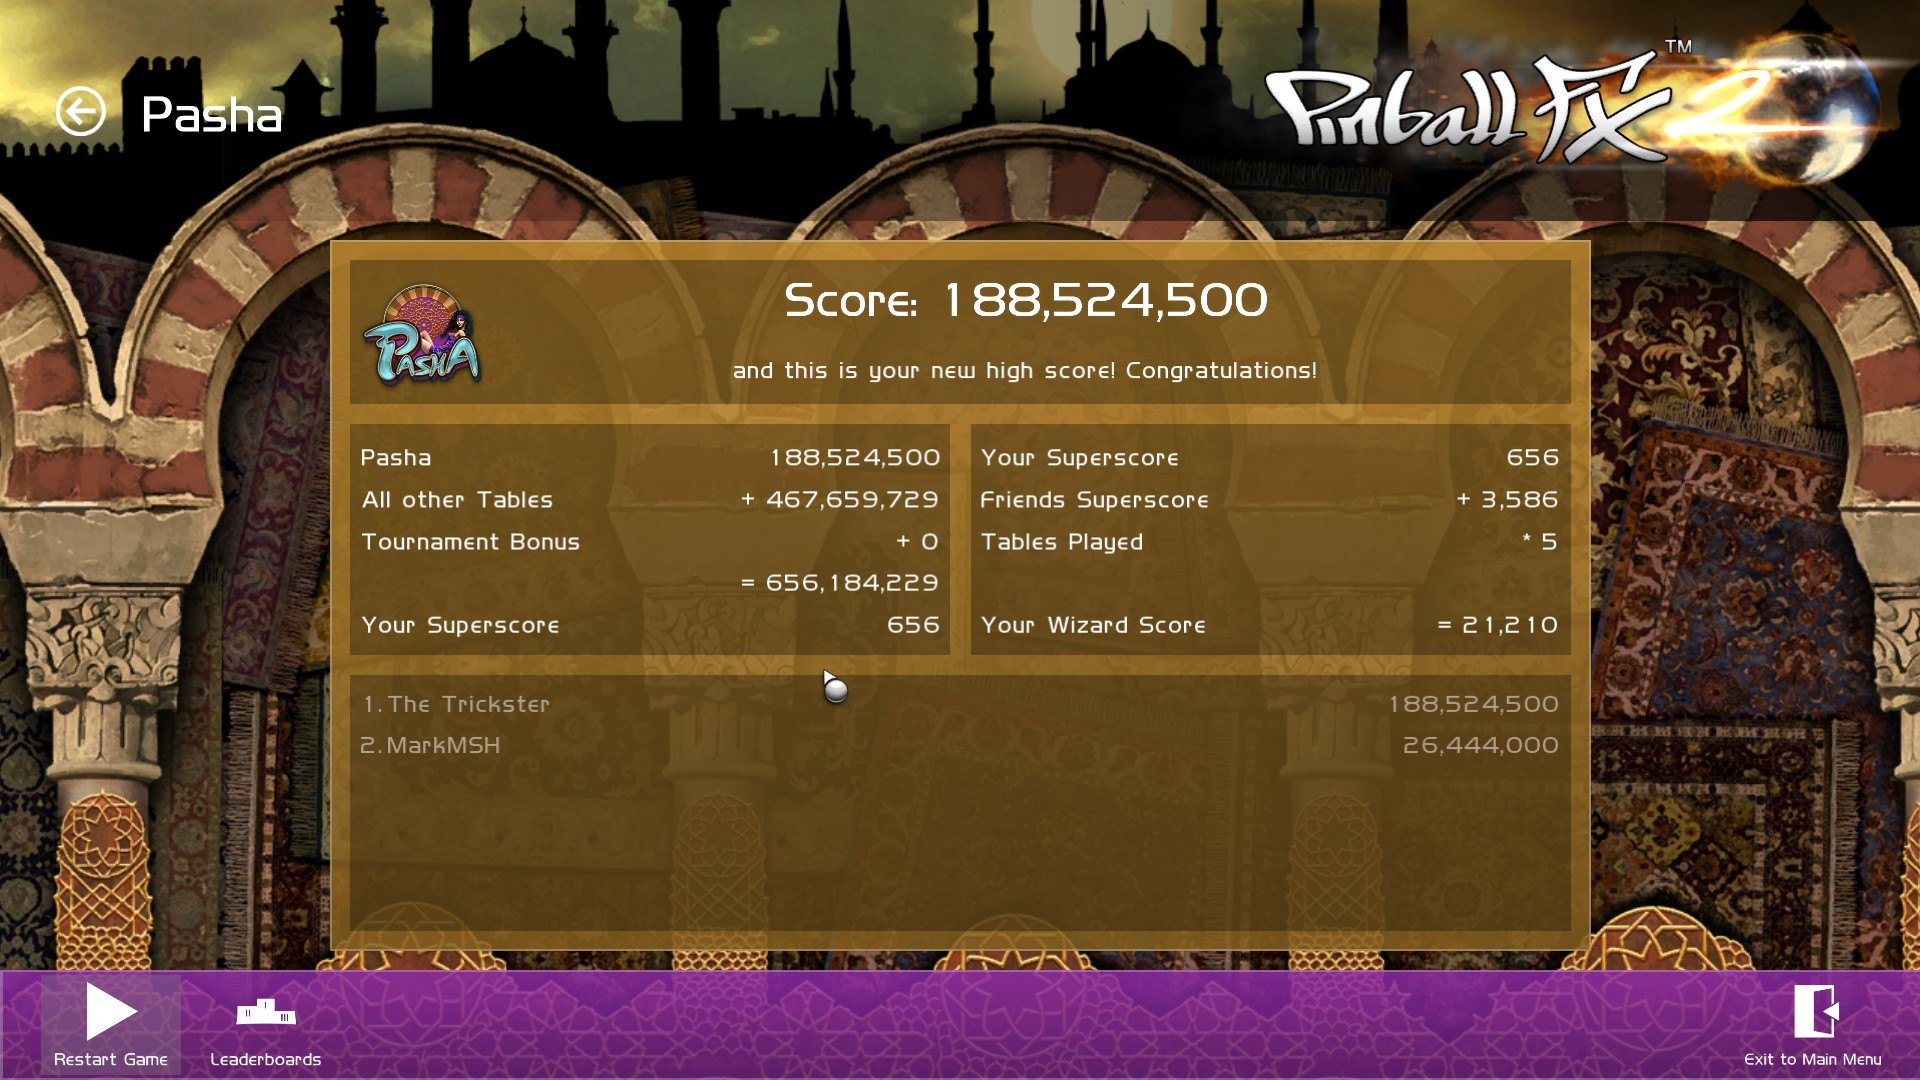 TheTrickster: Pinball FX 2: Pasha (PC) 188,524,500 points on 2015-12-07 02:37:52